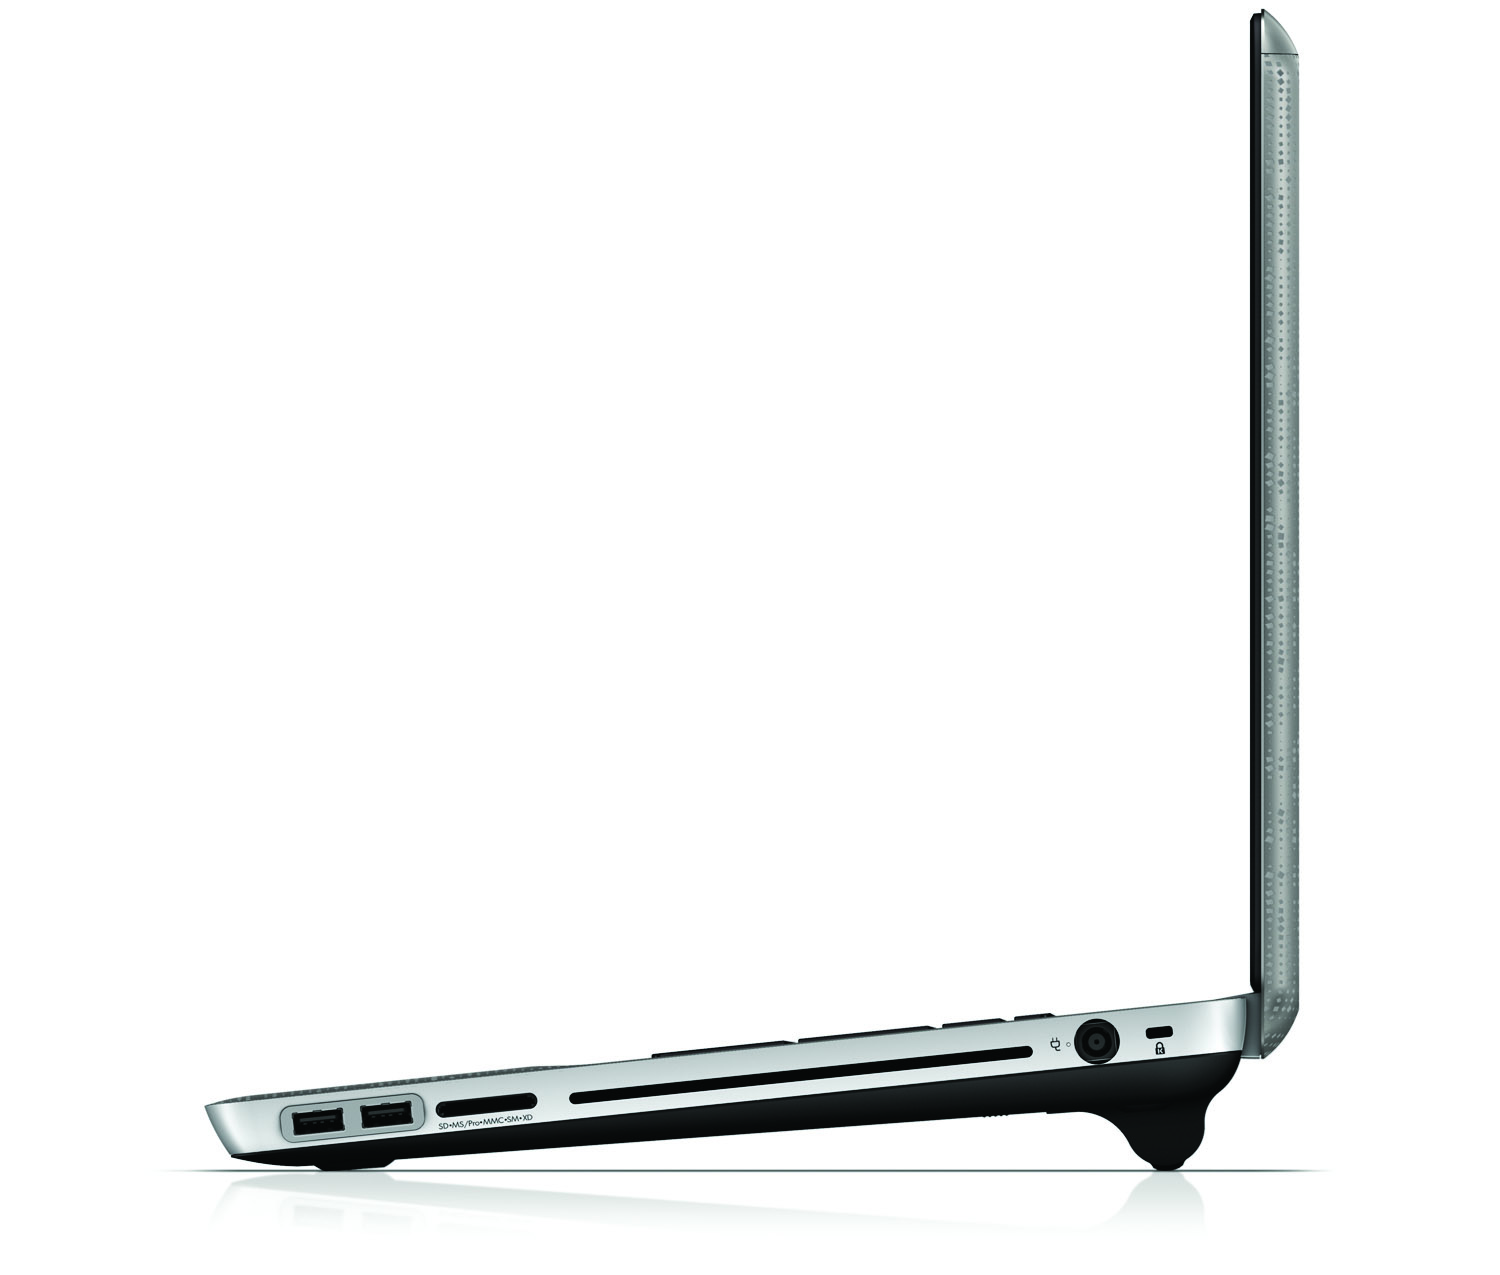 HP Envy 17, left profile with battery on white